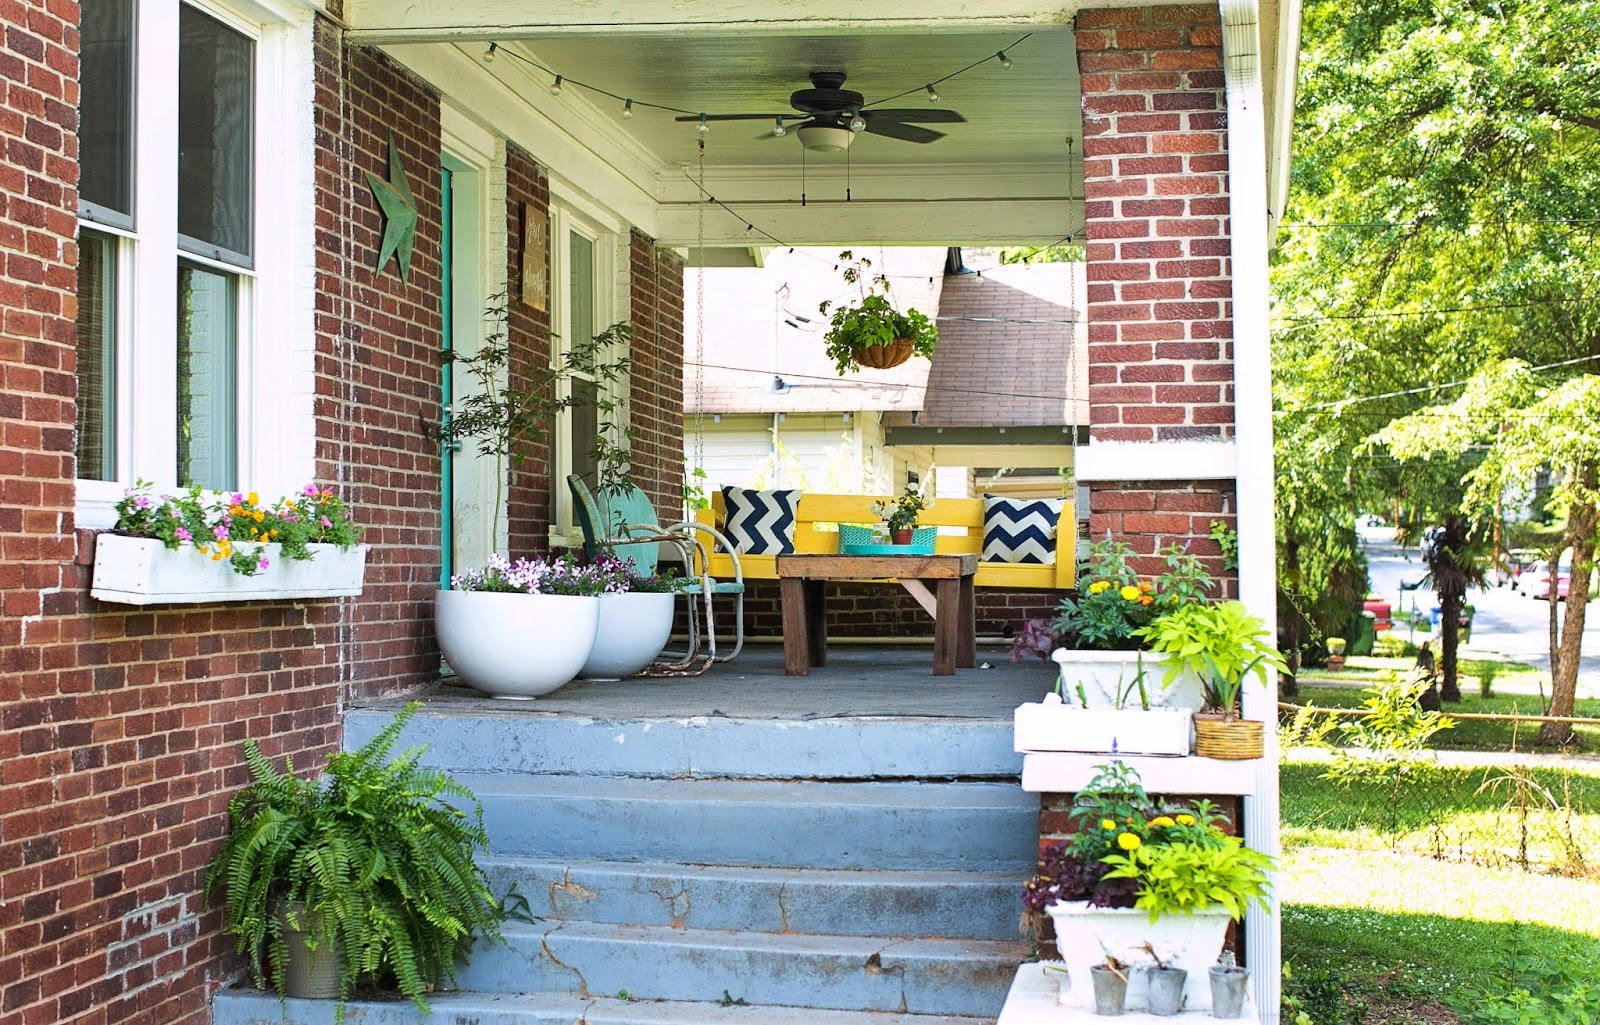 DIY front porch makeover with window boxes, pallet coffee table, yellow swing and turquoise door